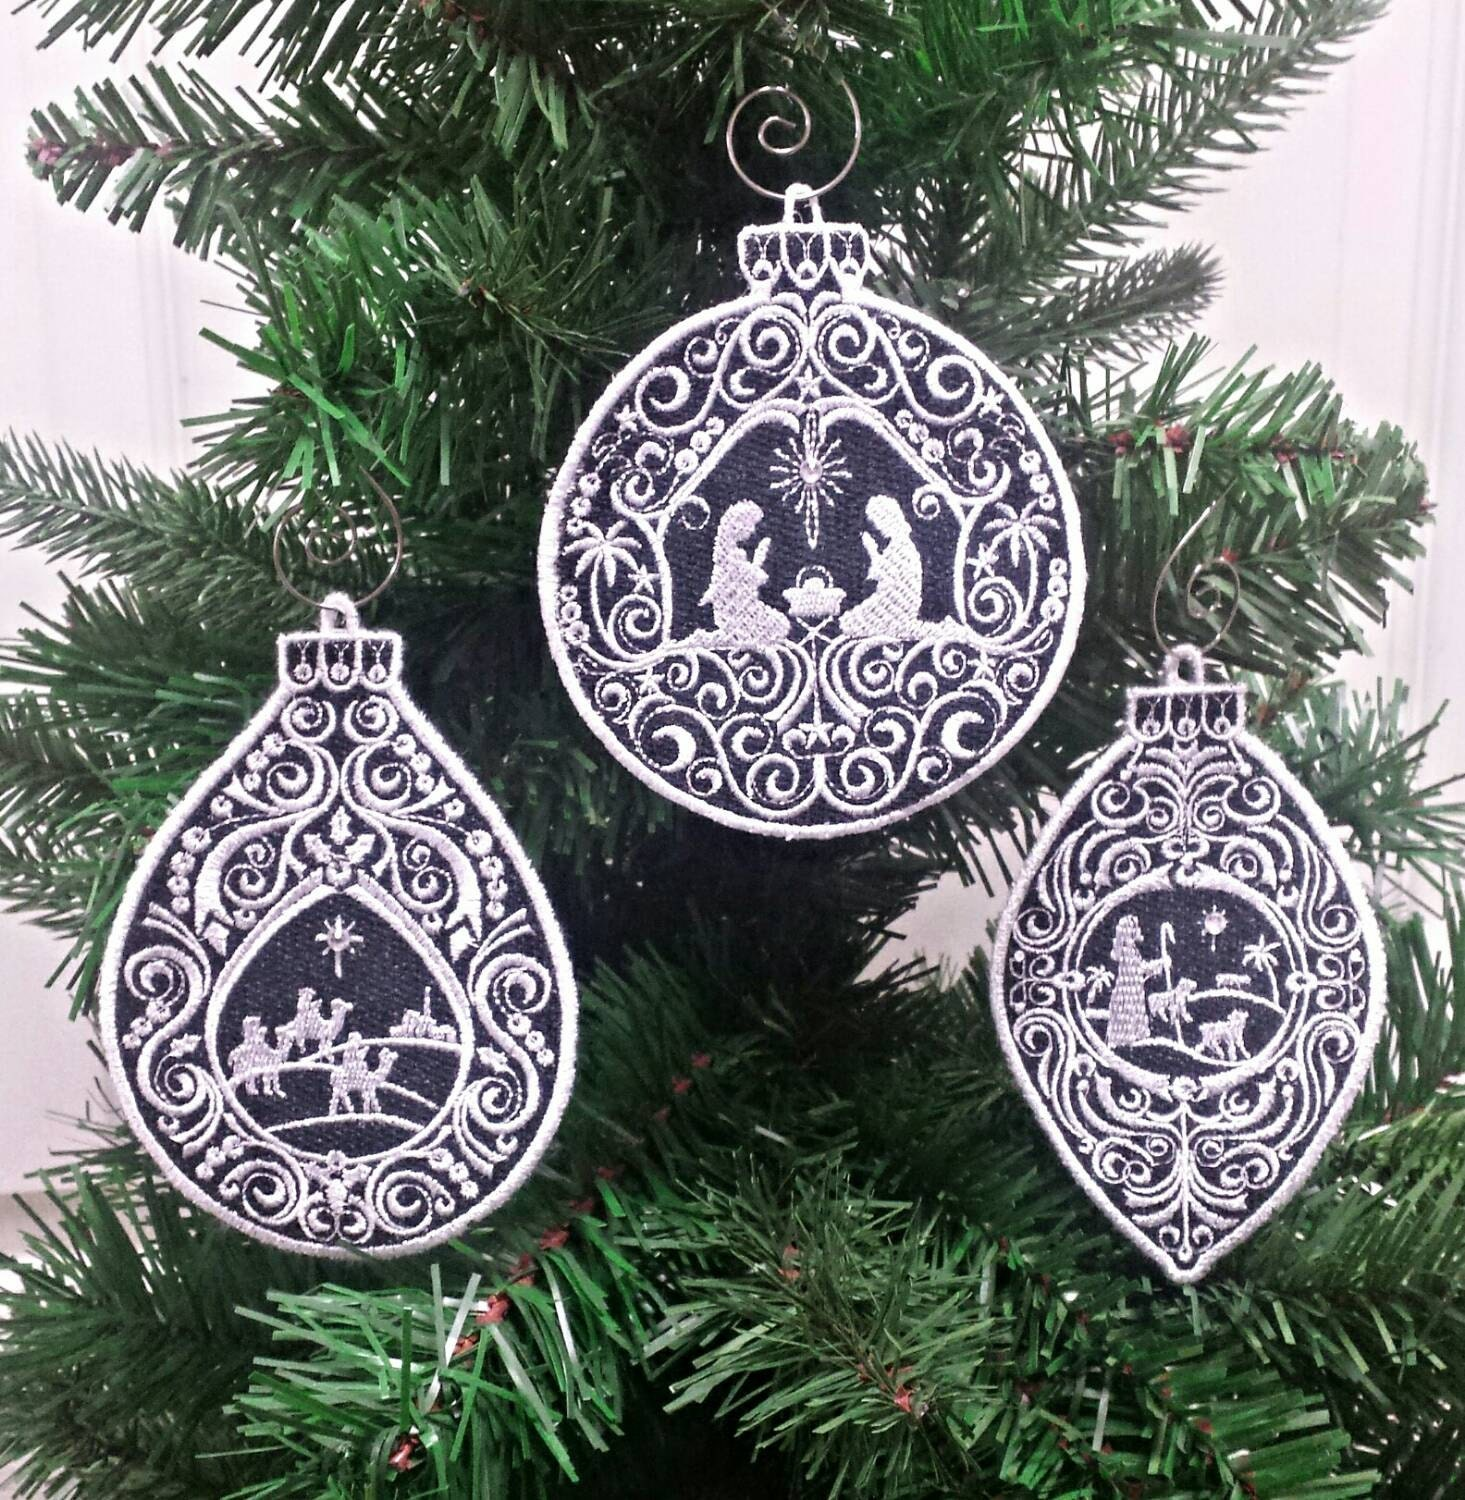 Stand Alone Lace Embroidery Designs : Set of nativity christmas ornament holy family free